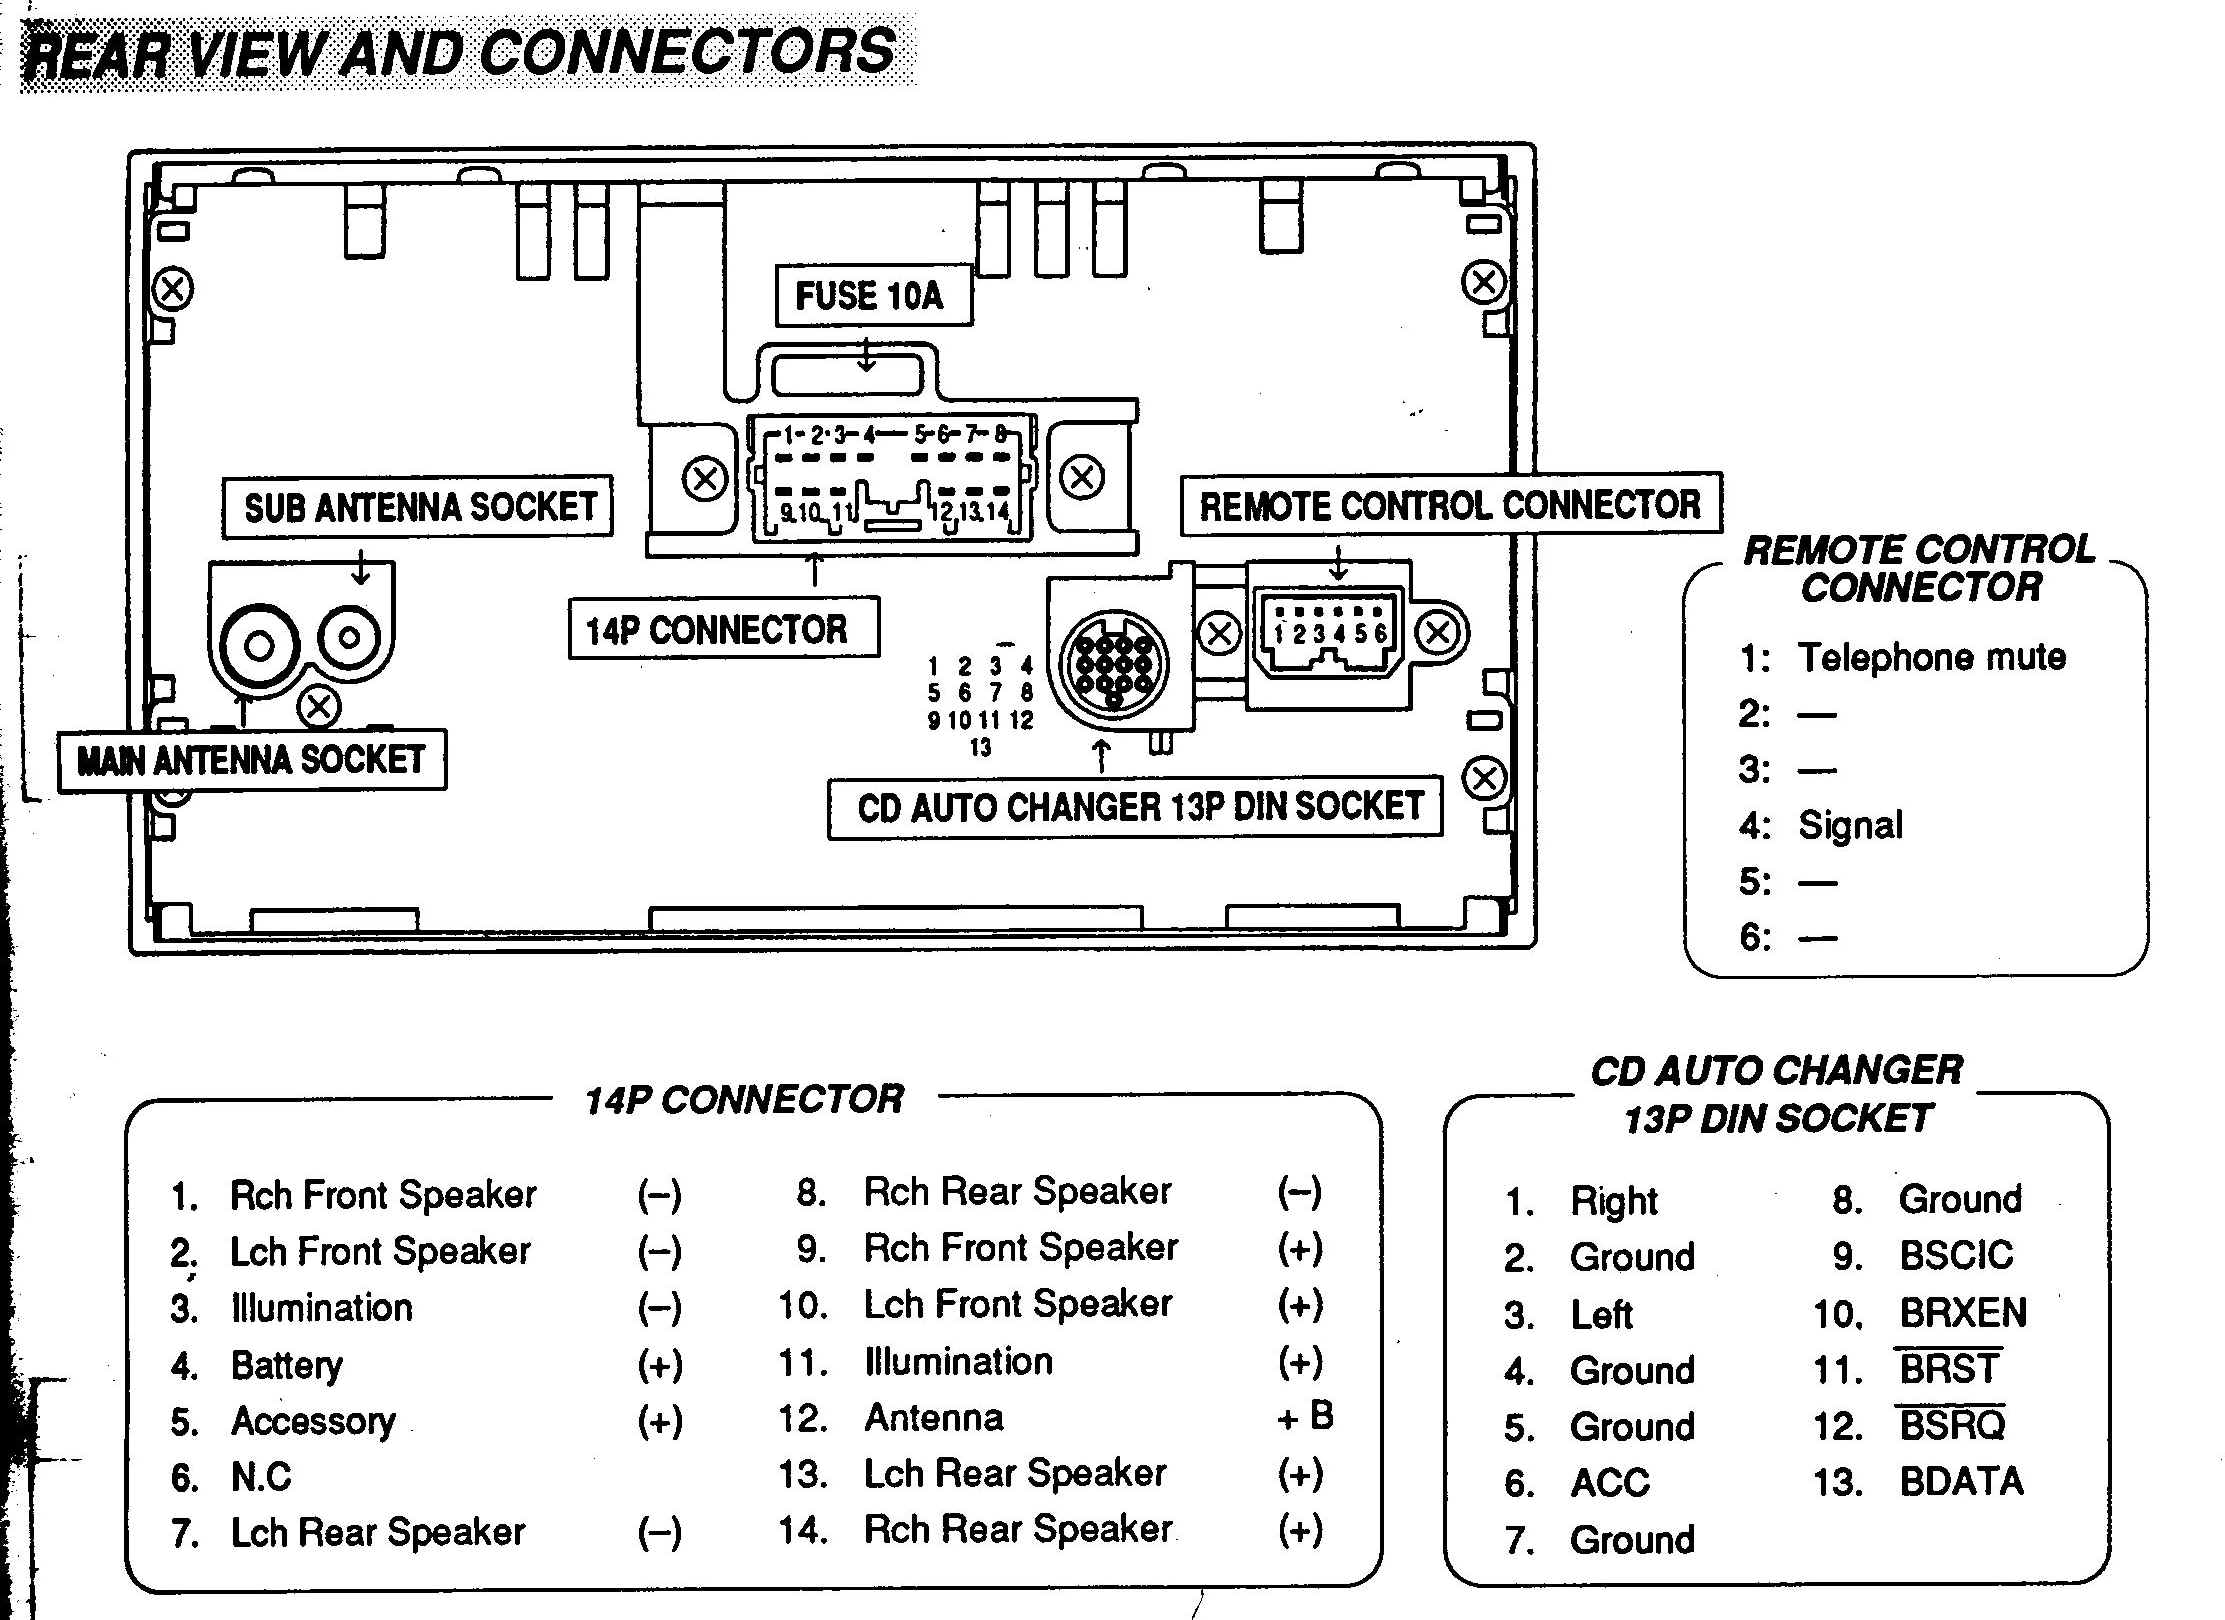 WireHarnessMit121003 car radio wire diagram car wiring diagrams instruction eg civic radio wiring diagram at aneh.co